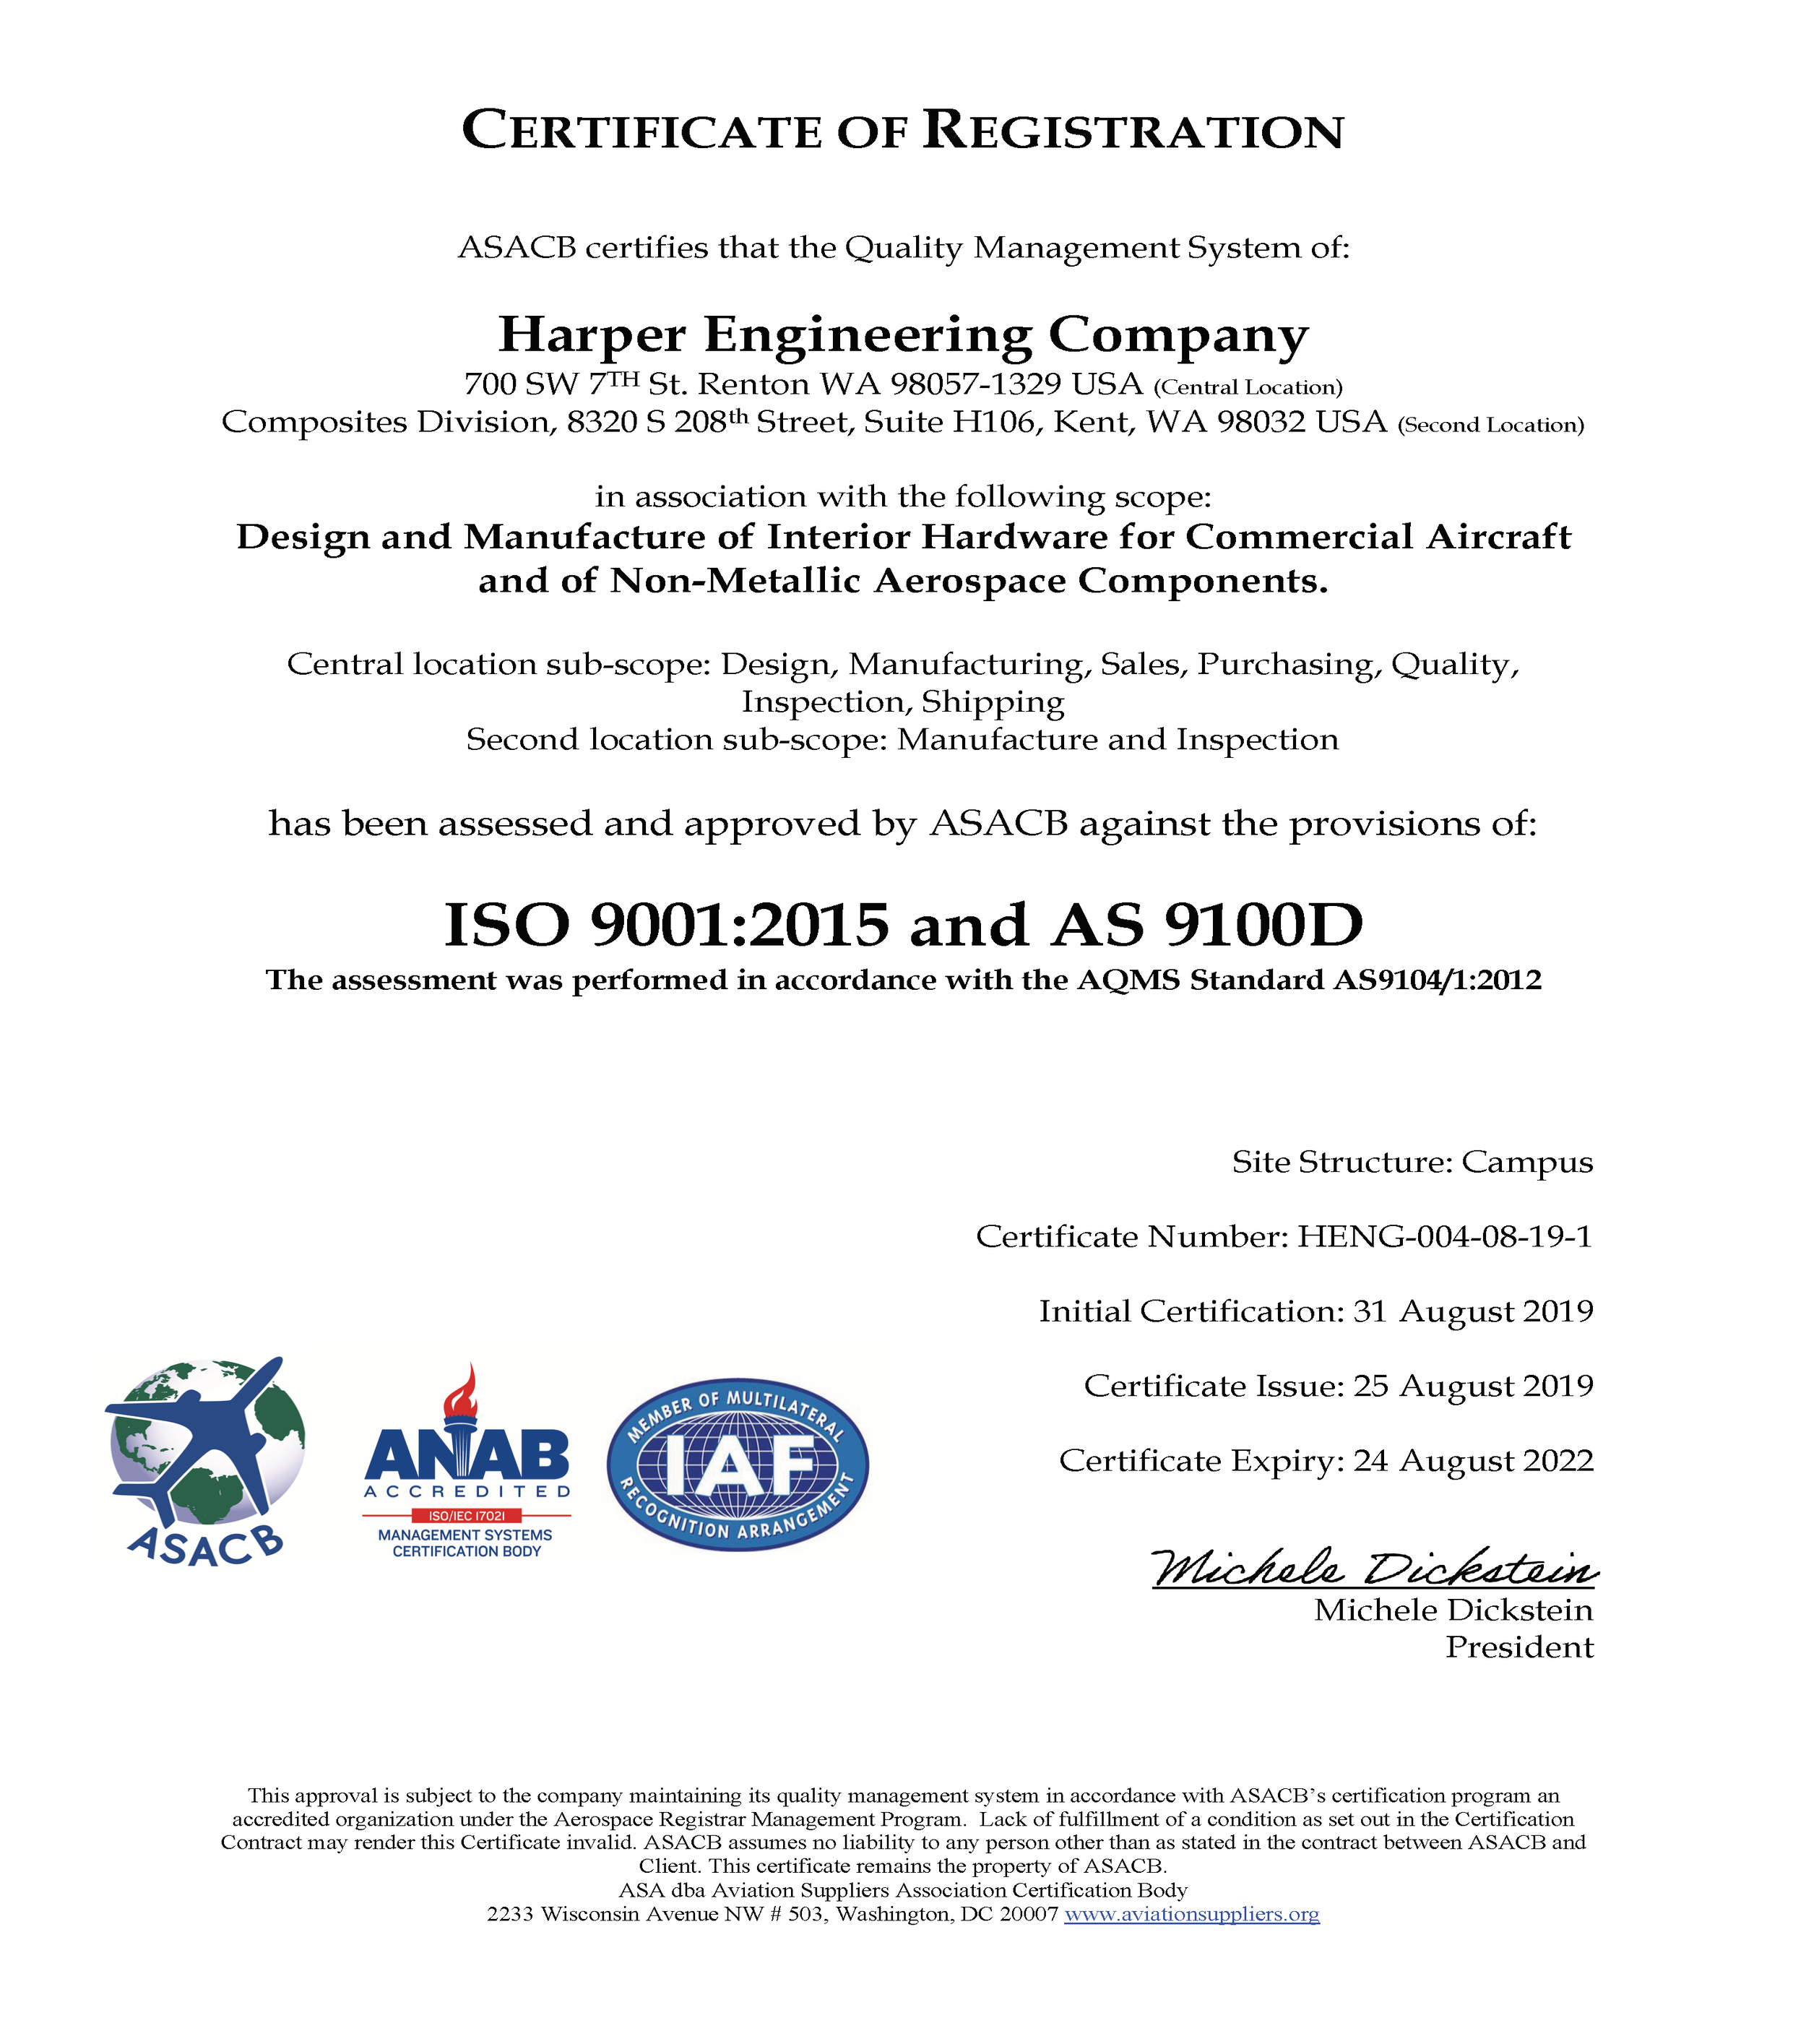 AS9100D Certificate - 2019.png